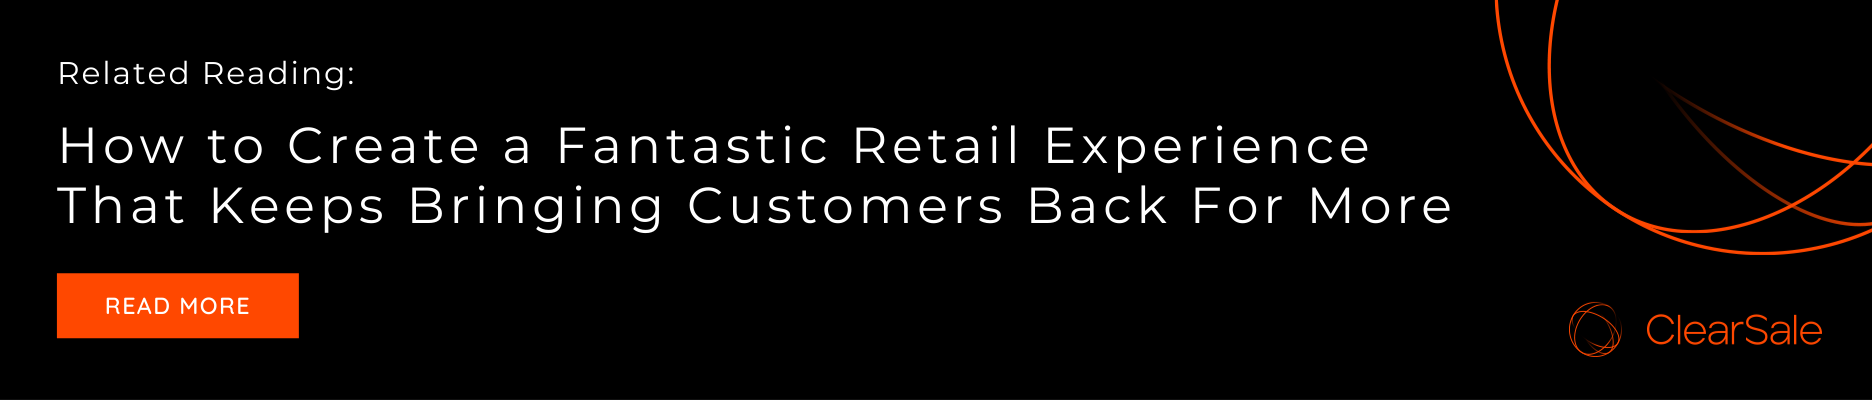 Related Reading: How to Create a Fantastic Retail Experience That Keeps Bringing Customers Back For More